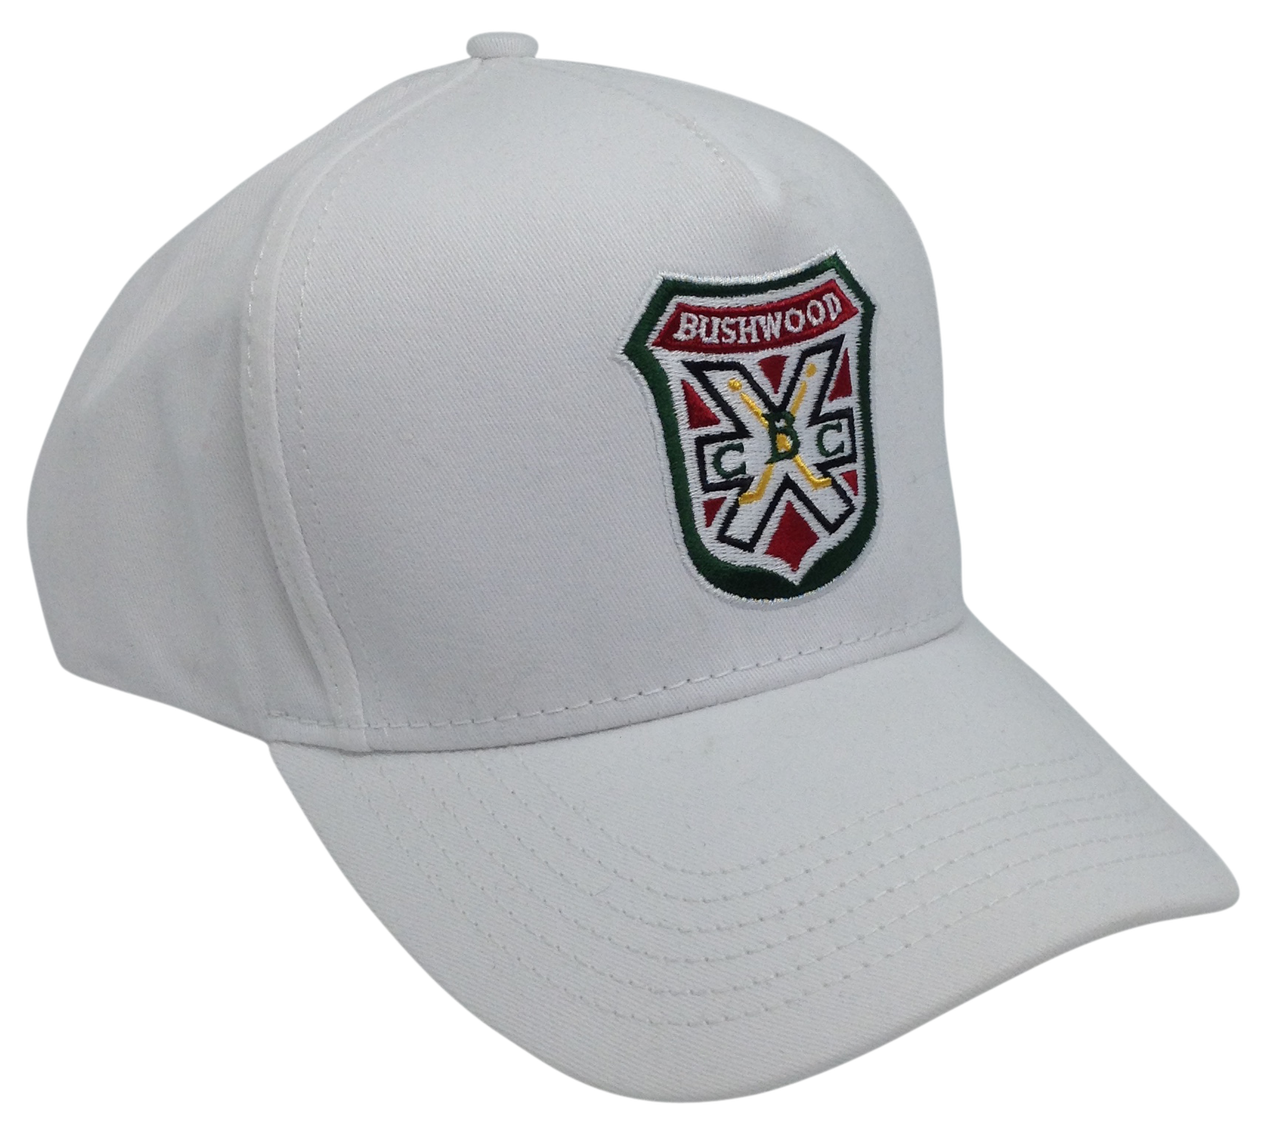 cfa7520935e Caddyshack - Bushwood Country Club Retro Snapback Golf Hat - White